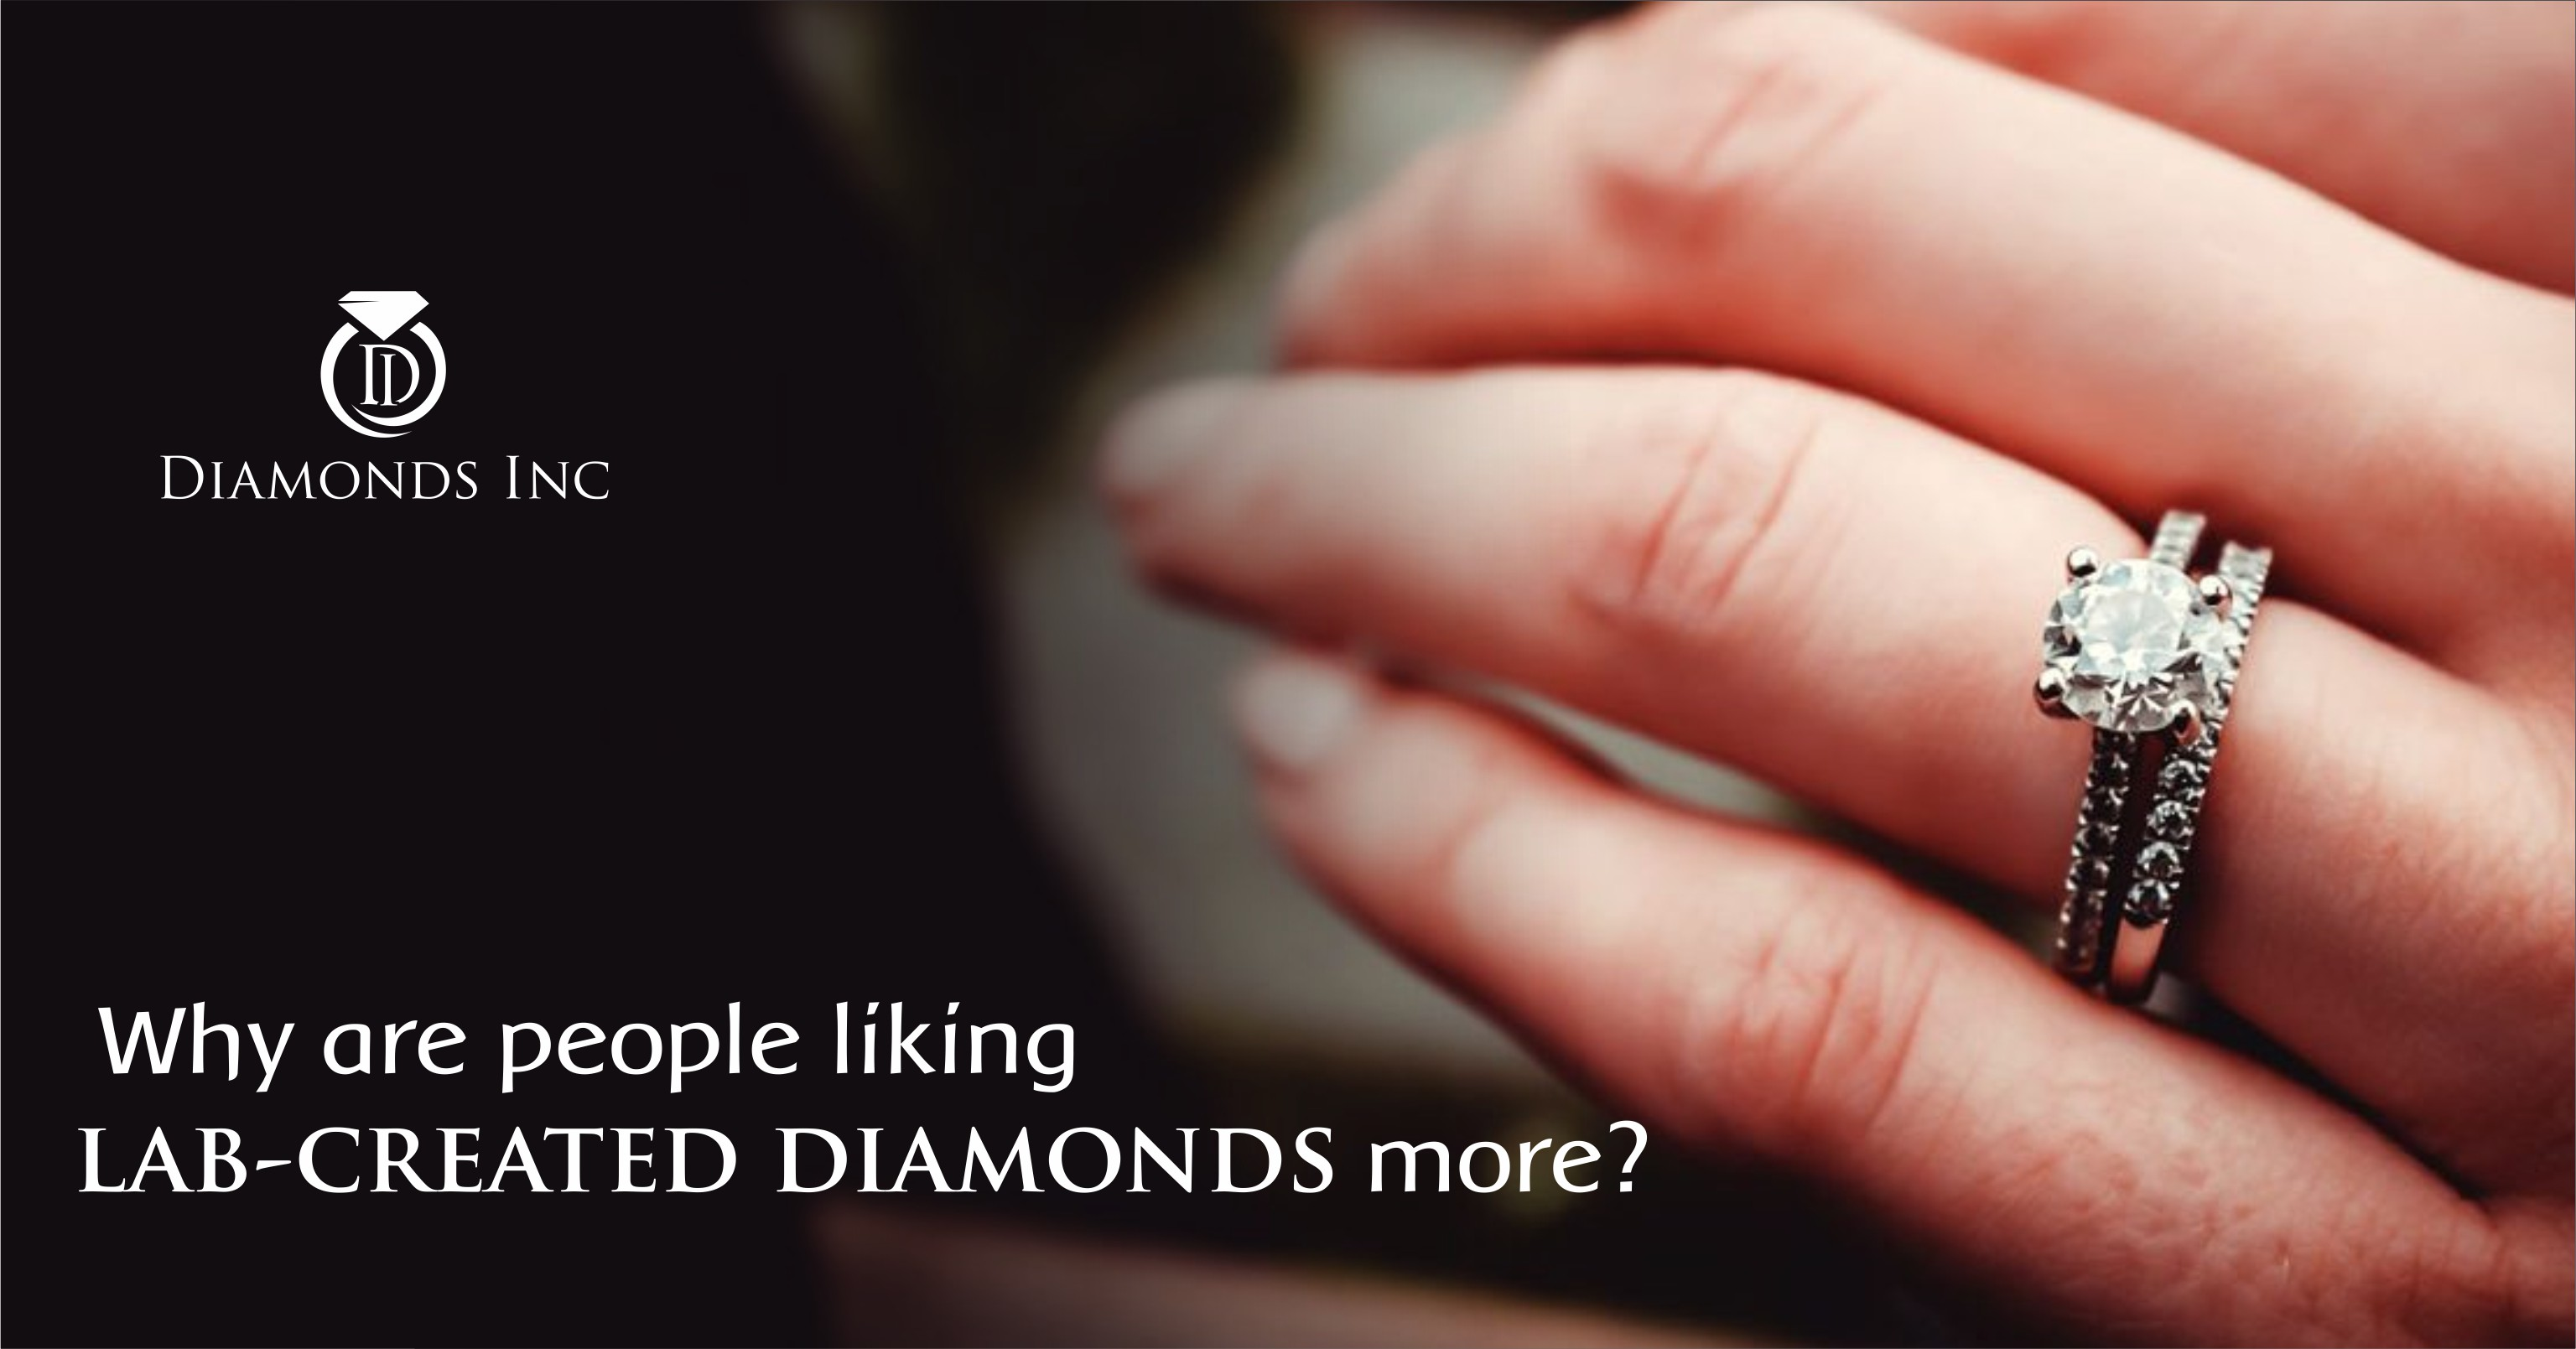 Why are people liking lab-created diamonds?